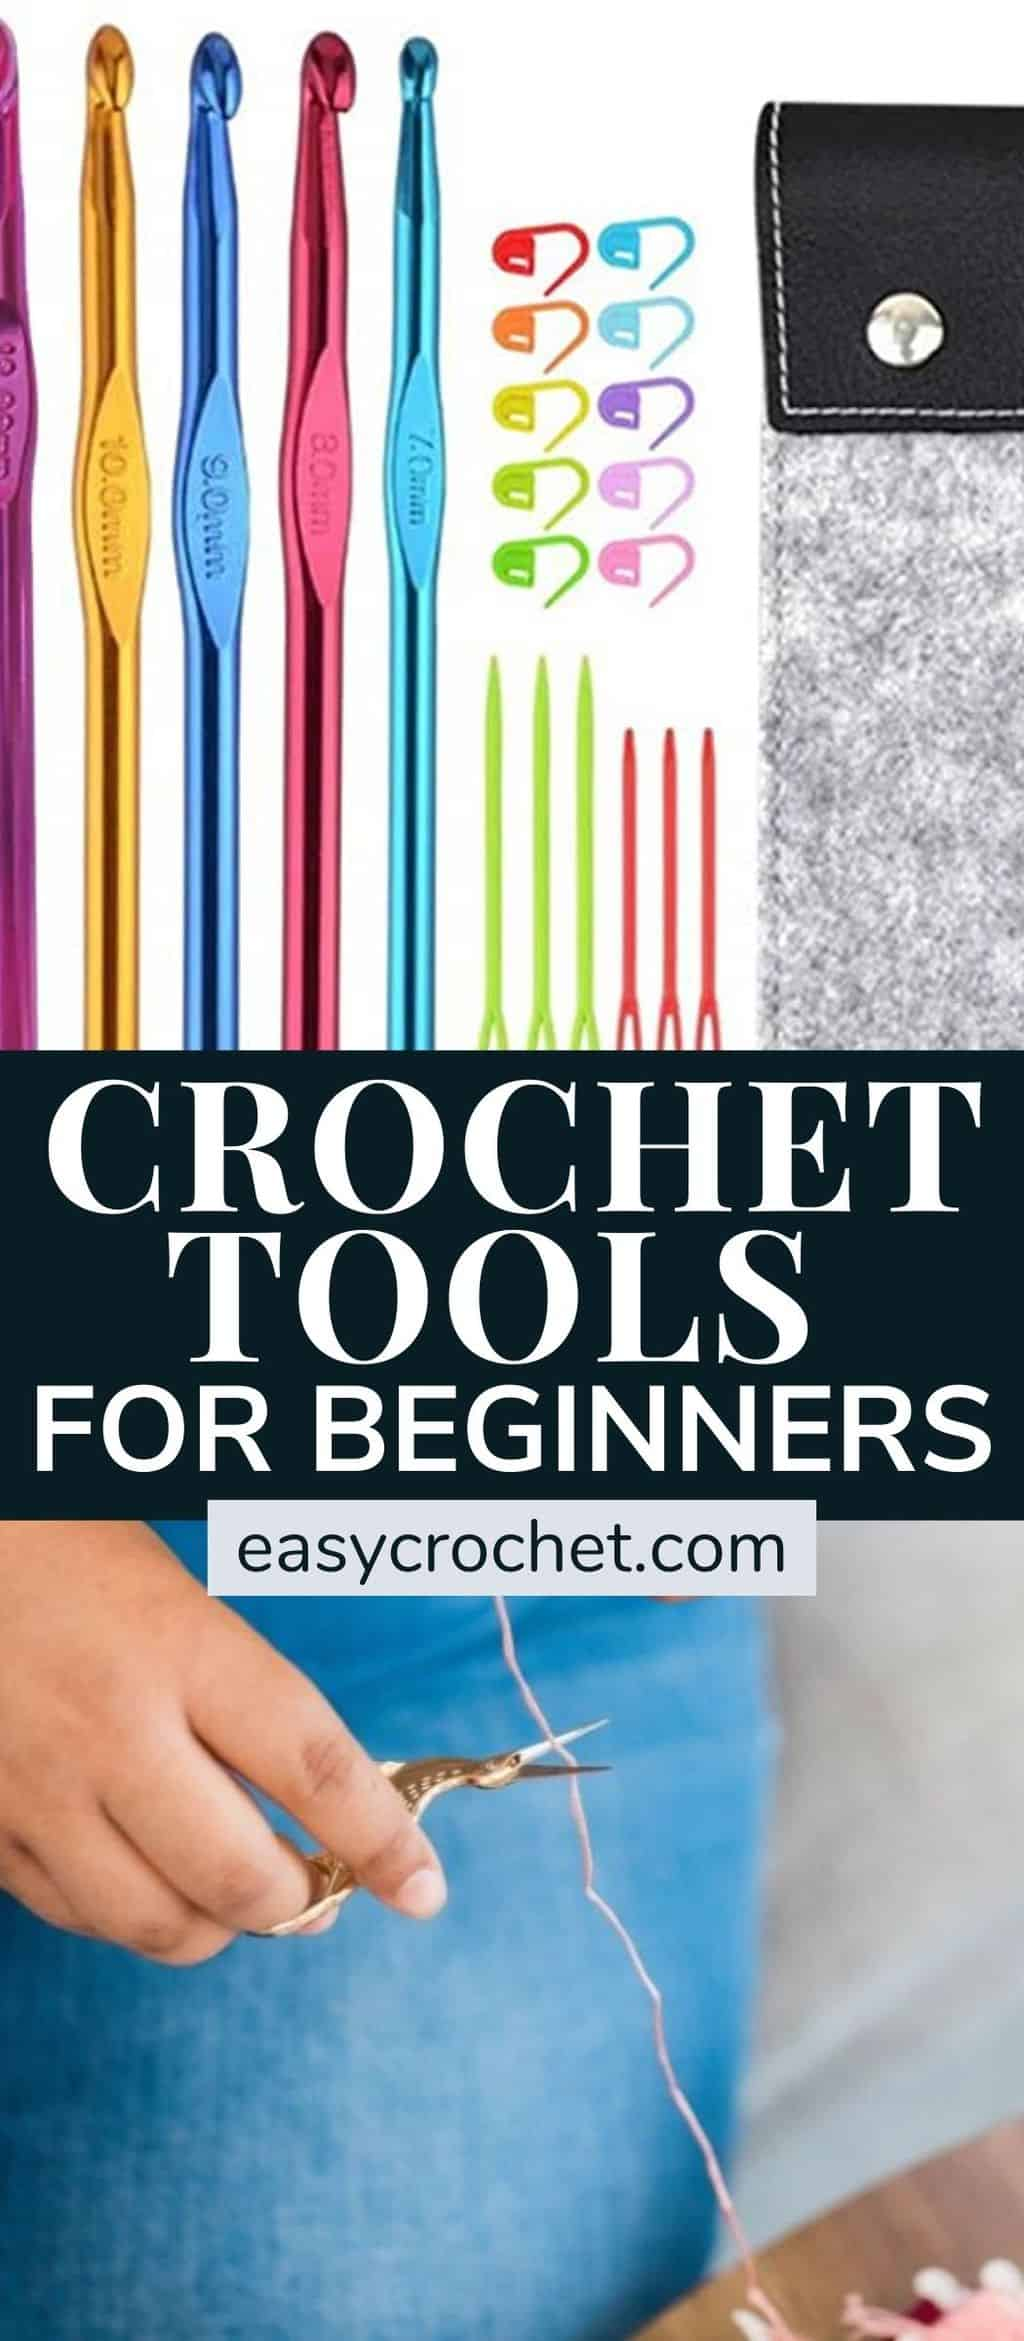 Crochet tools and supplies for beginner crocheters